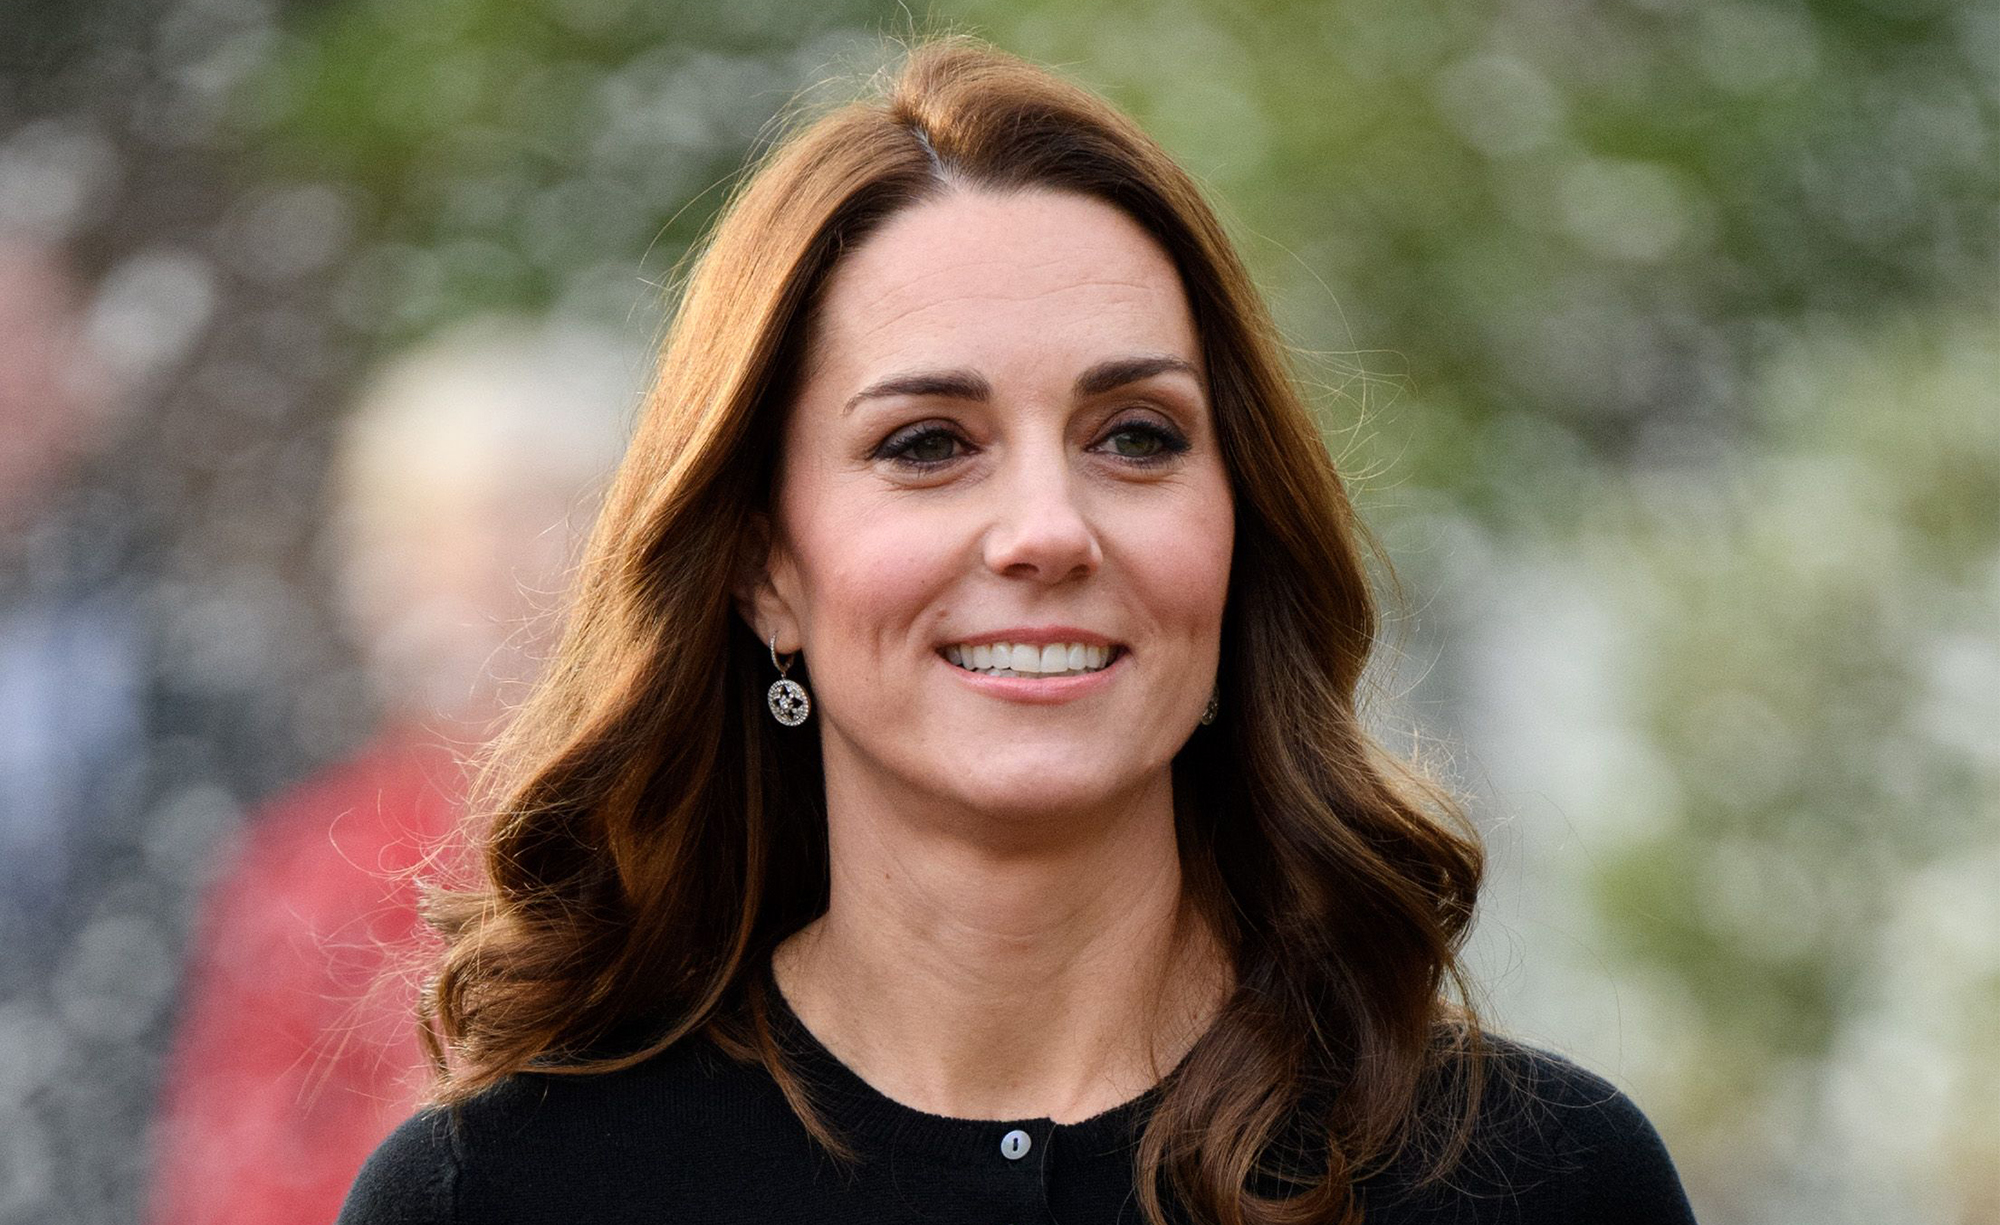 Kate Middleton at one point annoyed her household staff for this wholesome reason